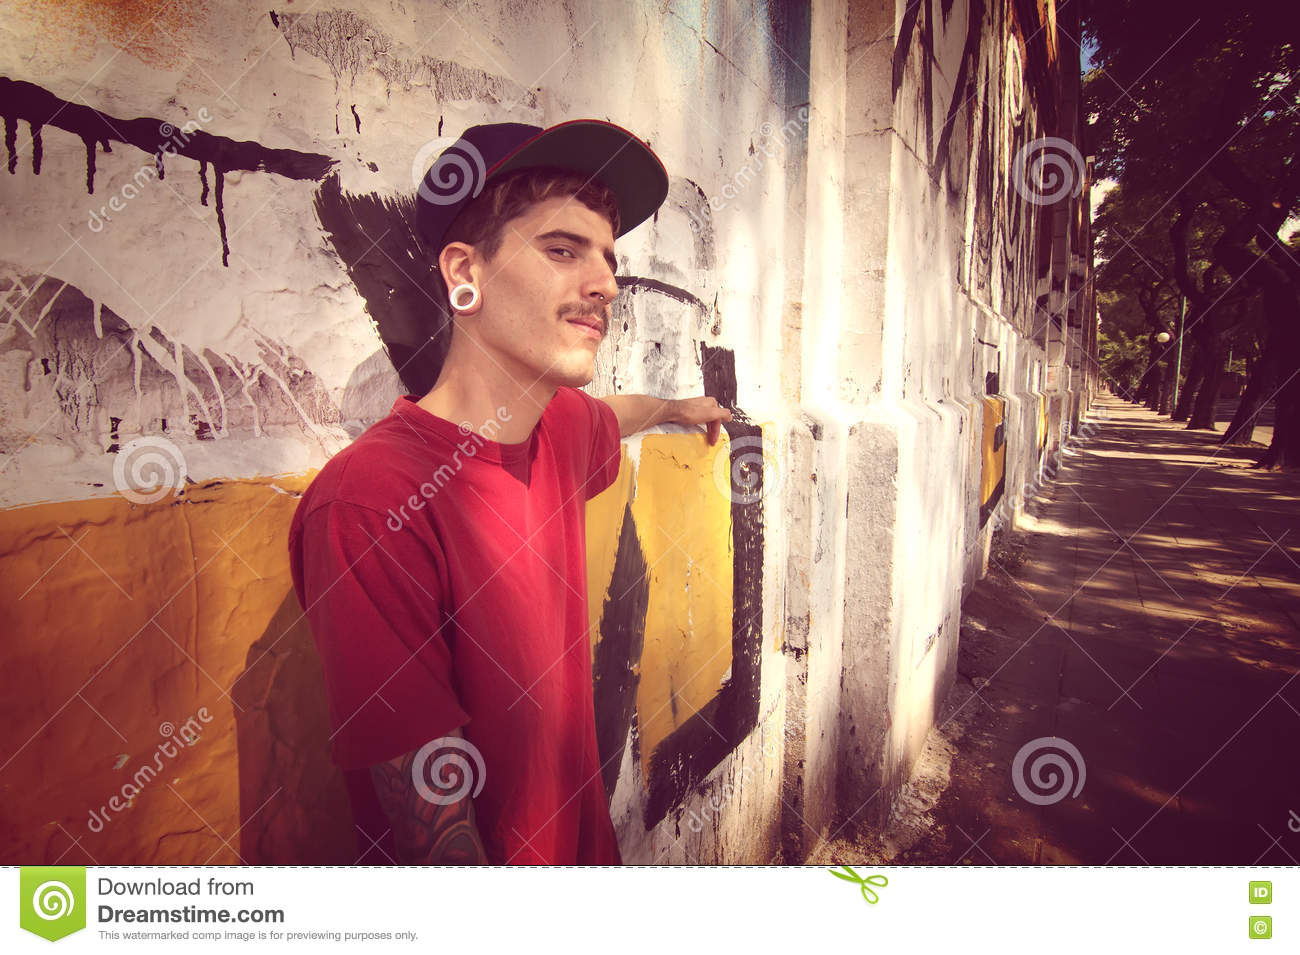 Rapper leaning on a Wall